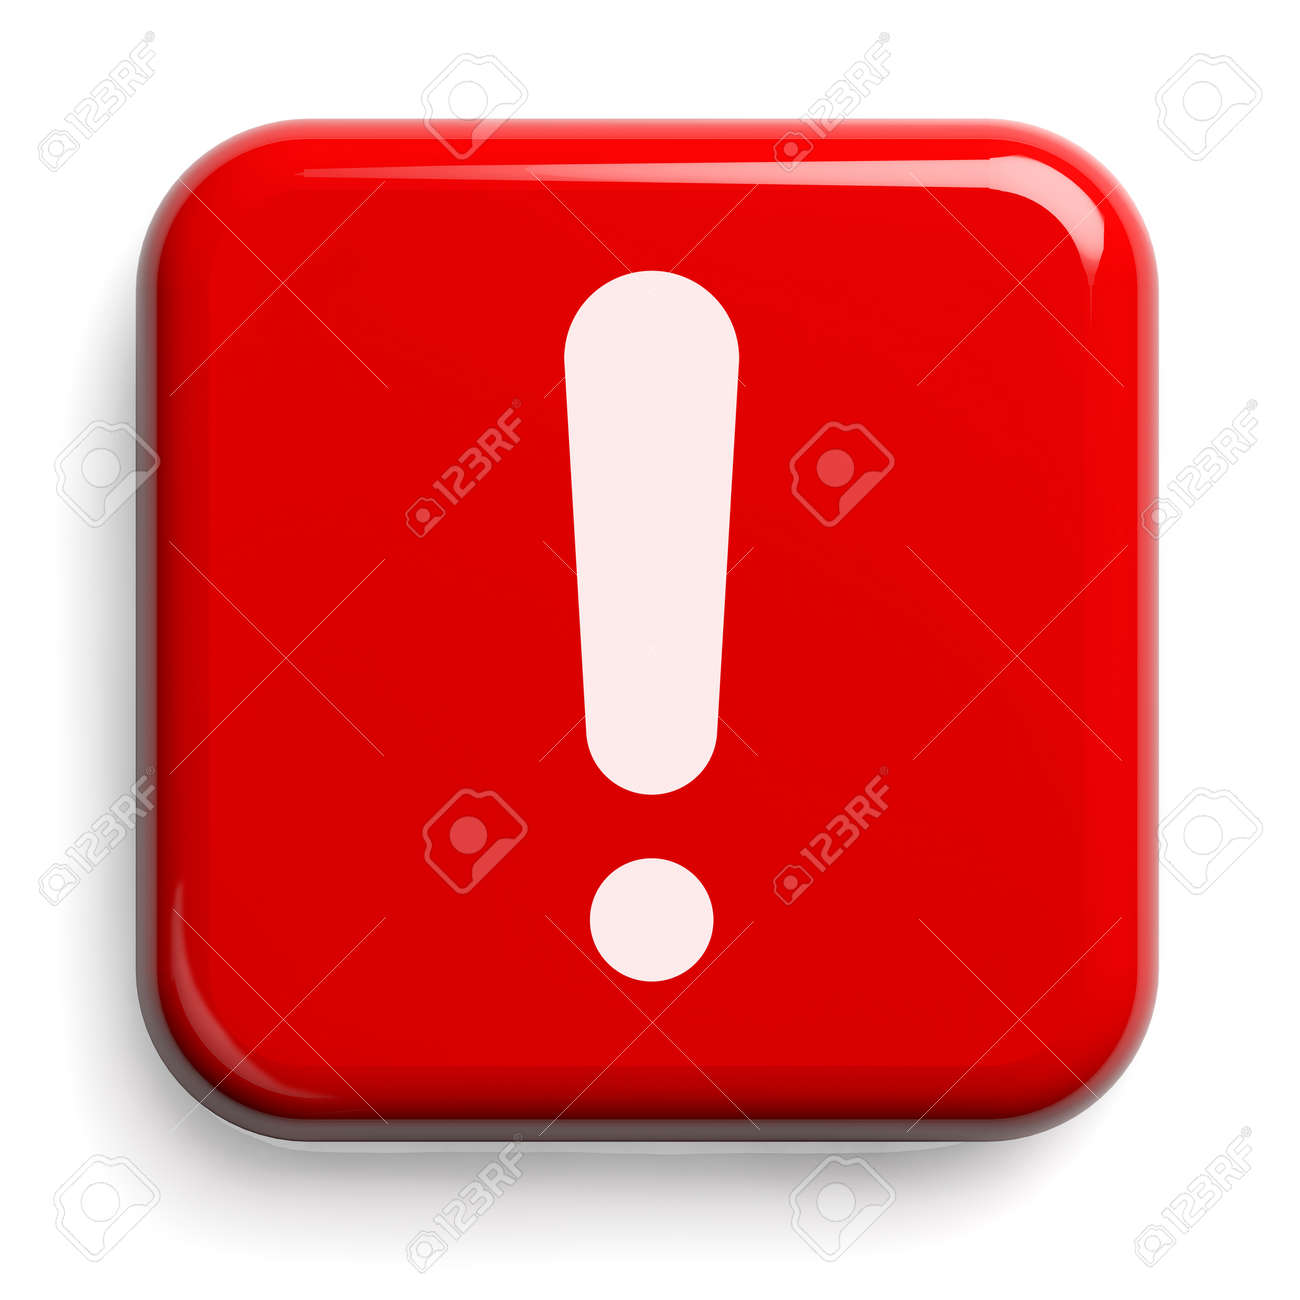 Red Alarm Button Isolated on White. Clipping path included. 3D illustration. - 147353765